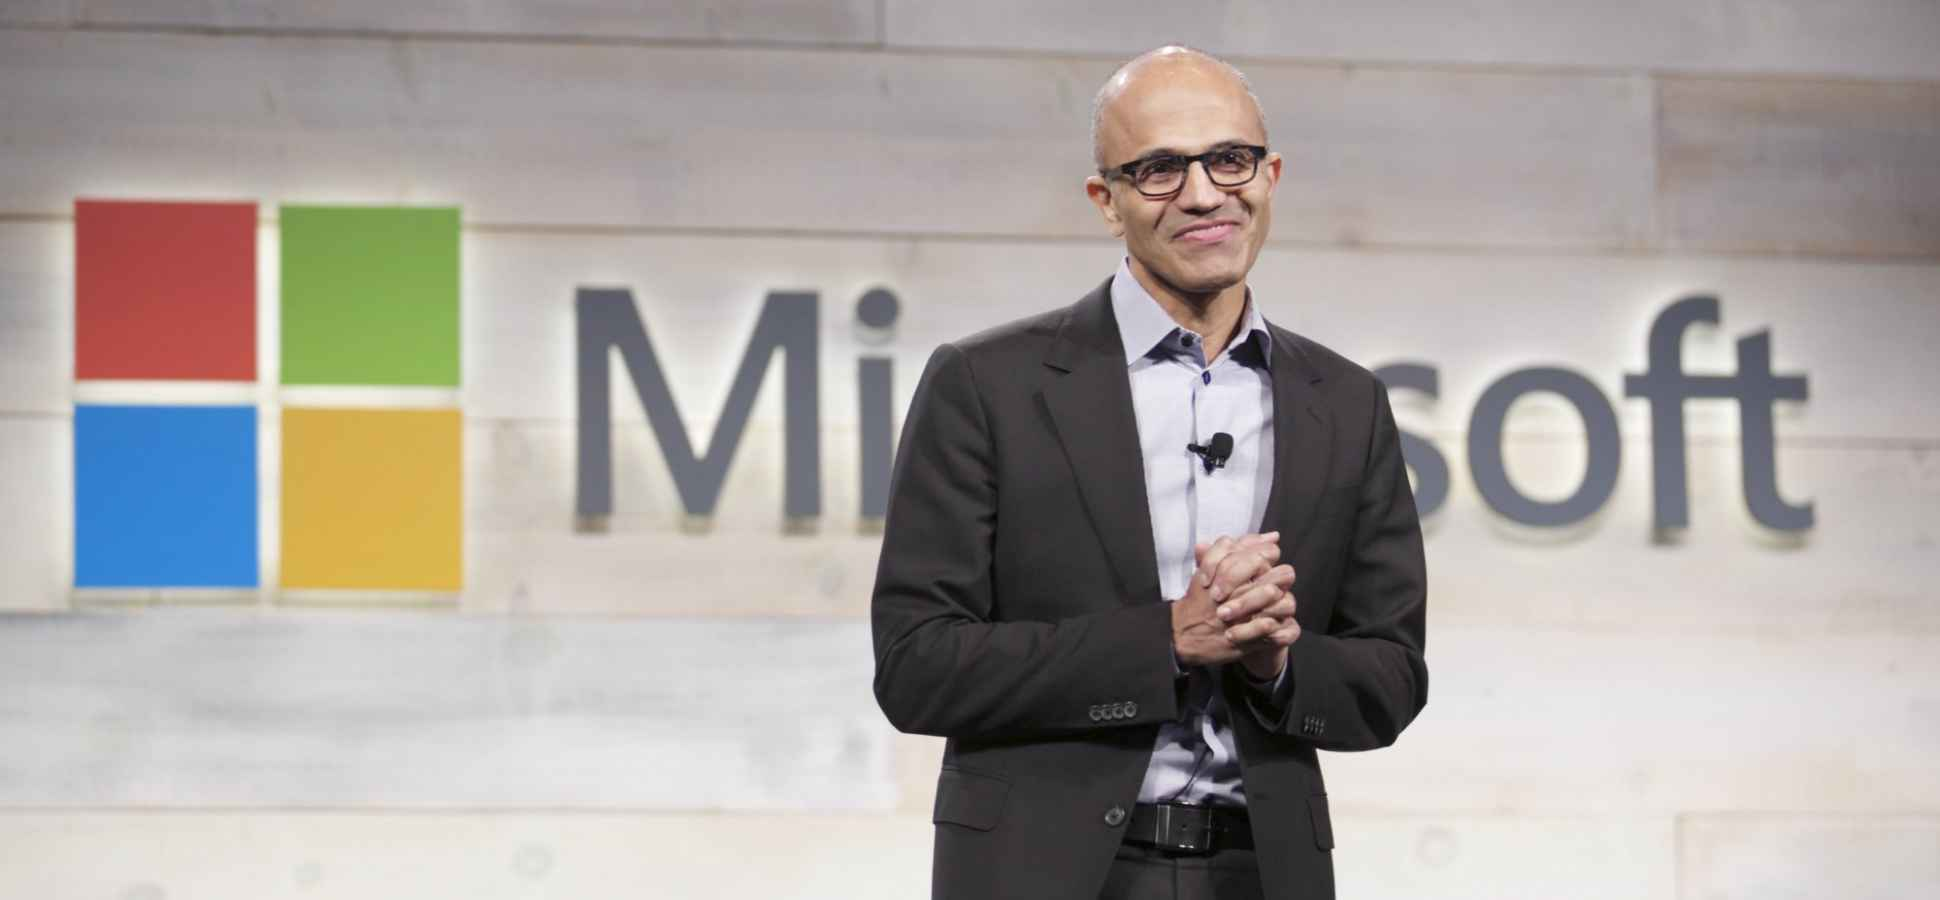 Microsoft's CEO Sent an Extraordinary Email to Employees After They Committed an Epic Fail